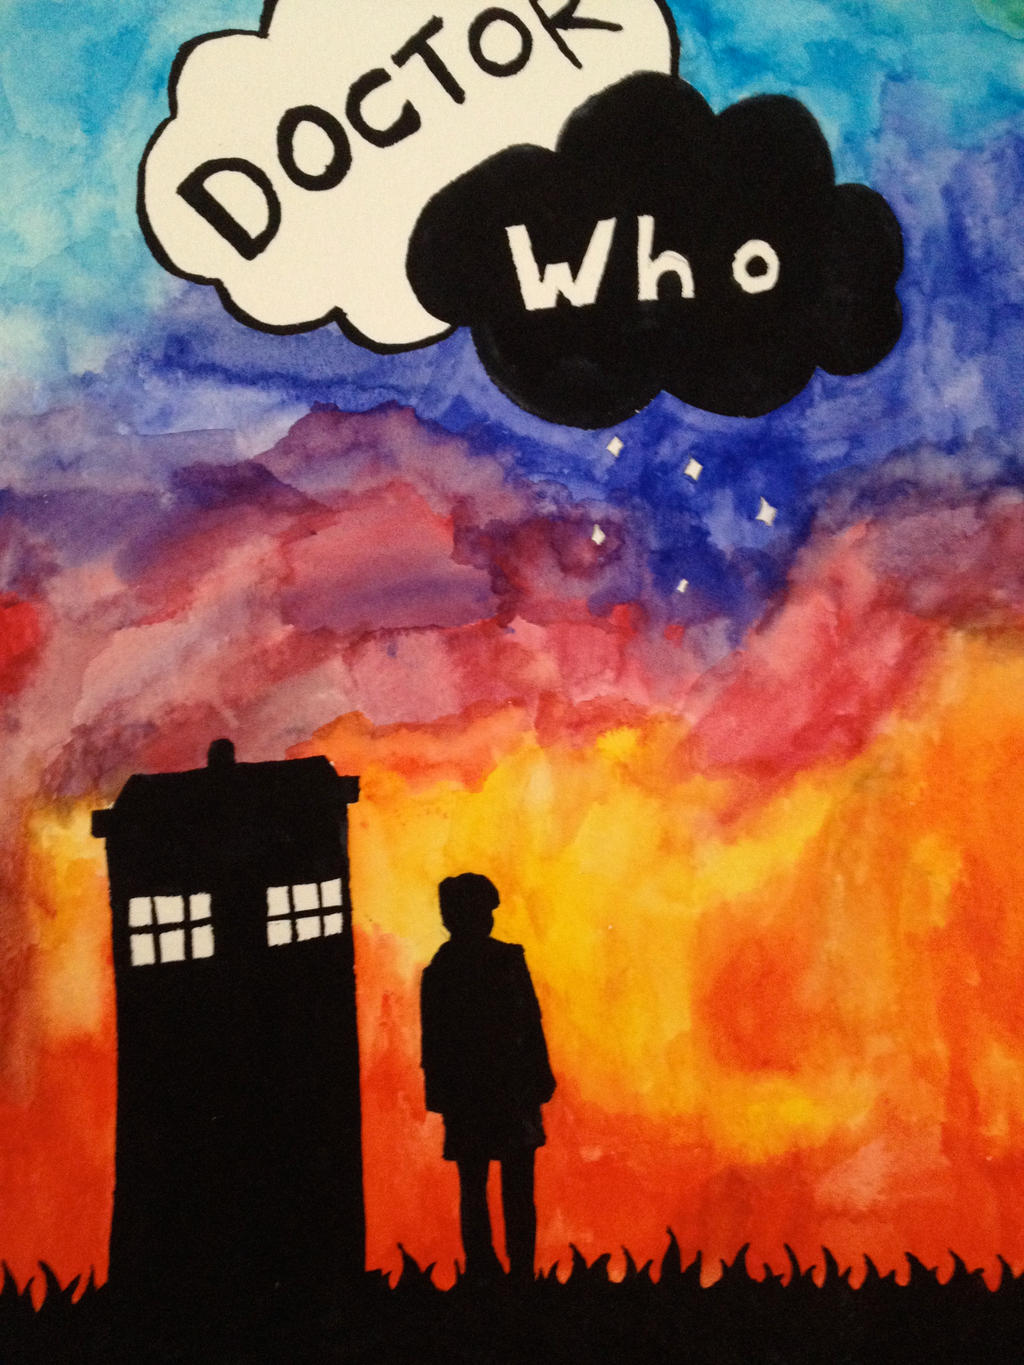 Doctor Who/ The fault in our stars by England-France